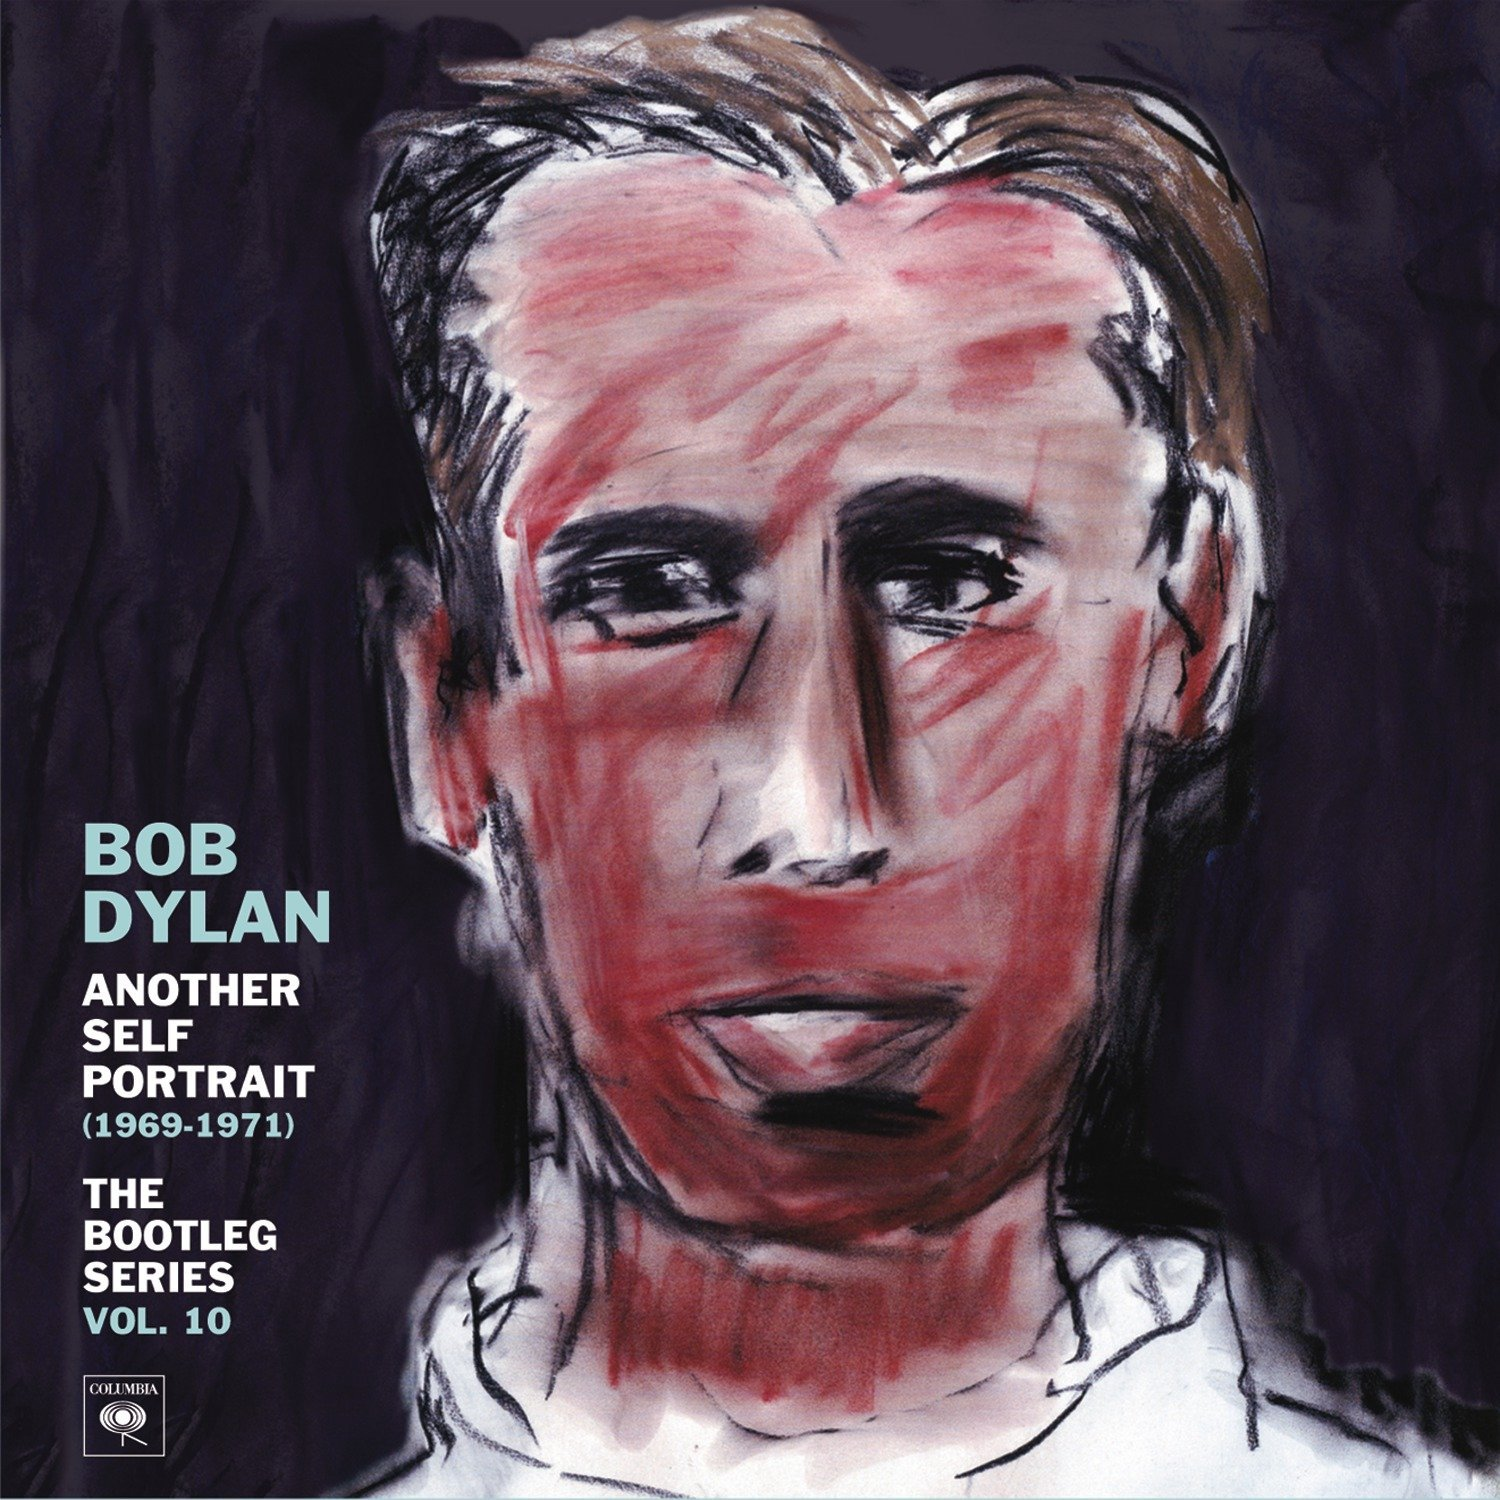 Bob Dylan / Another Self Portrait (1968-1971) Bootleg Series Vol 10